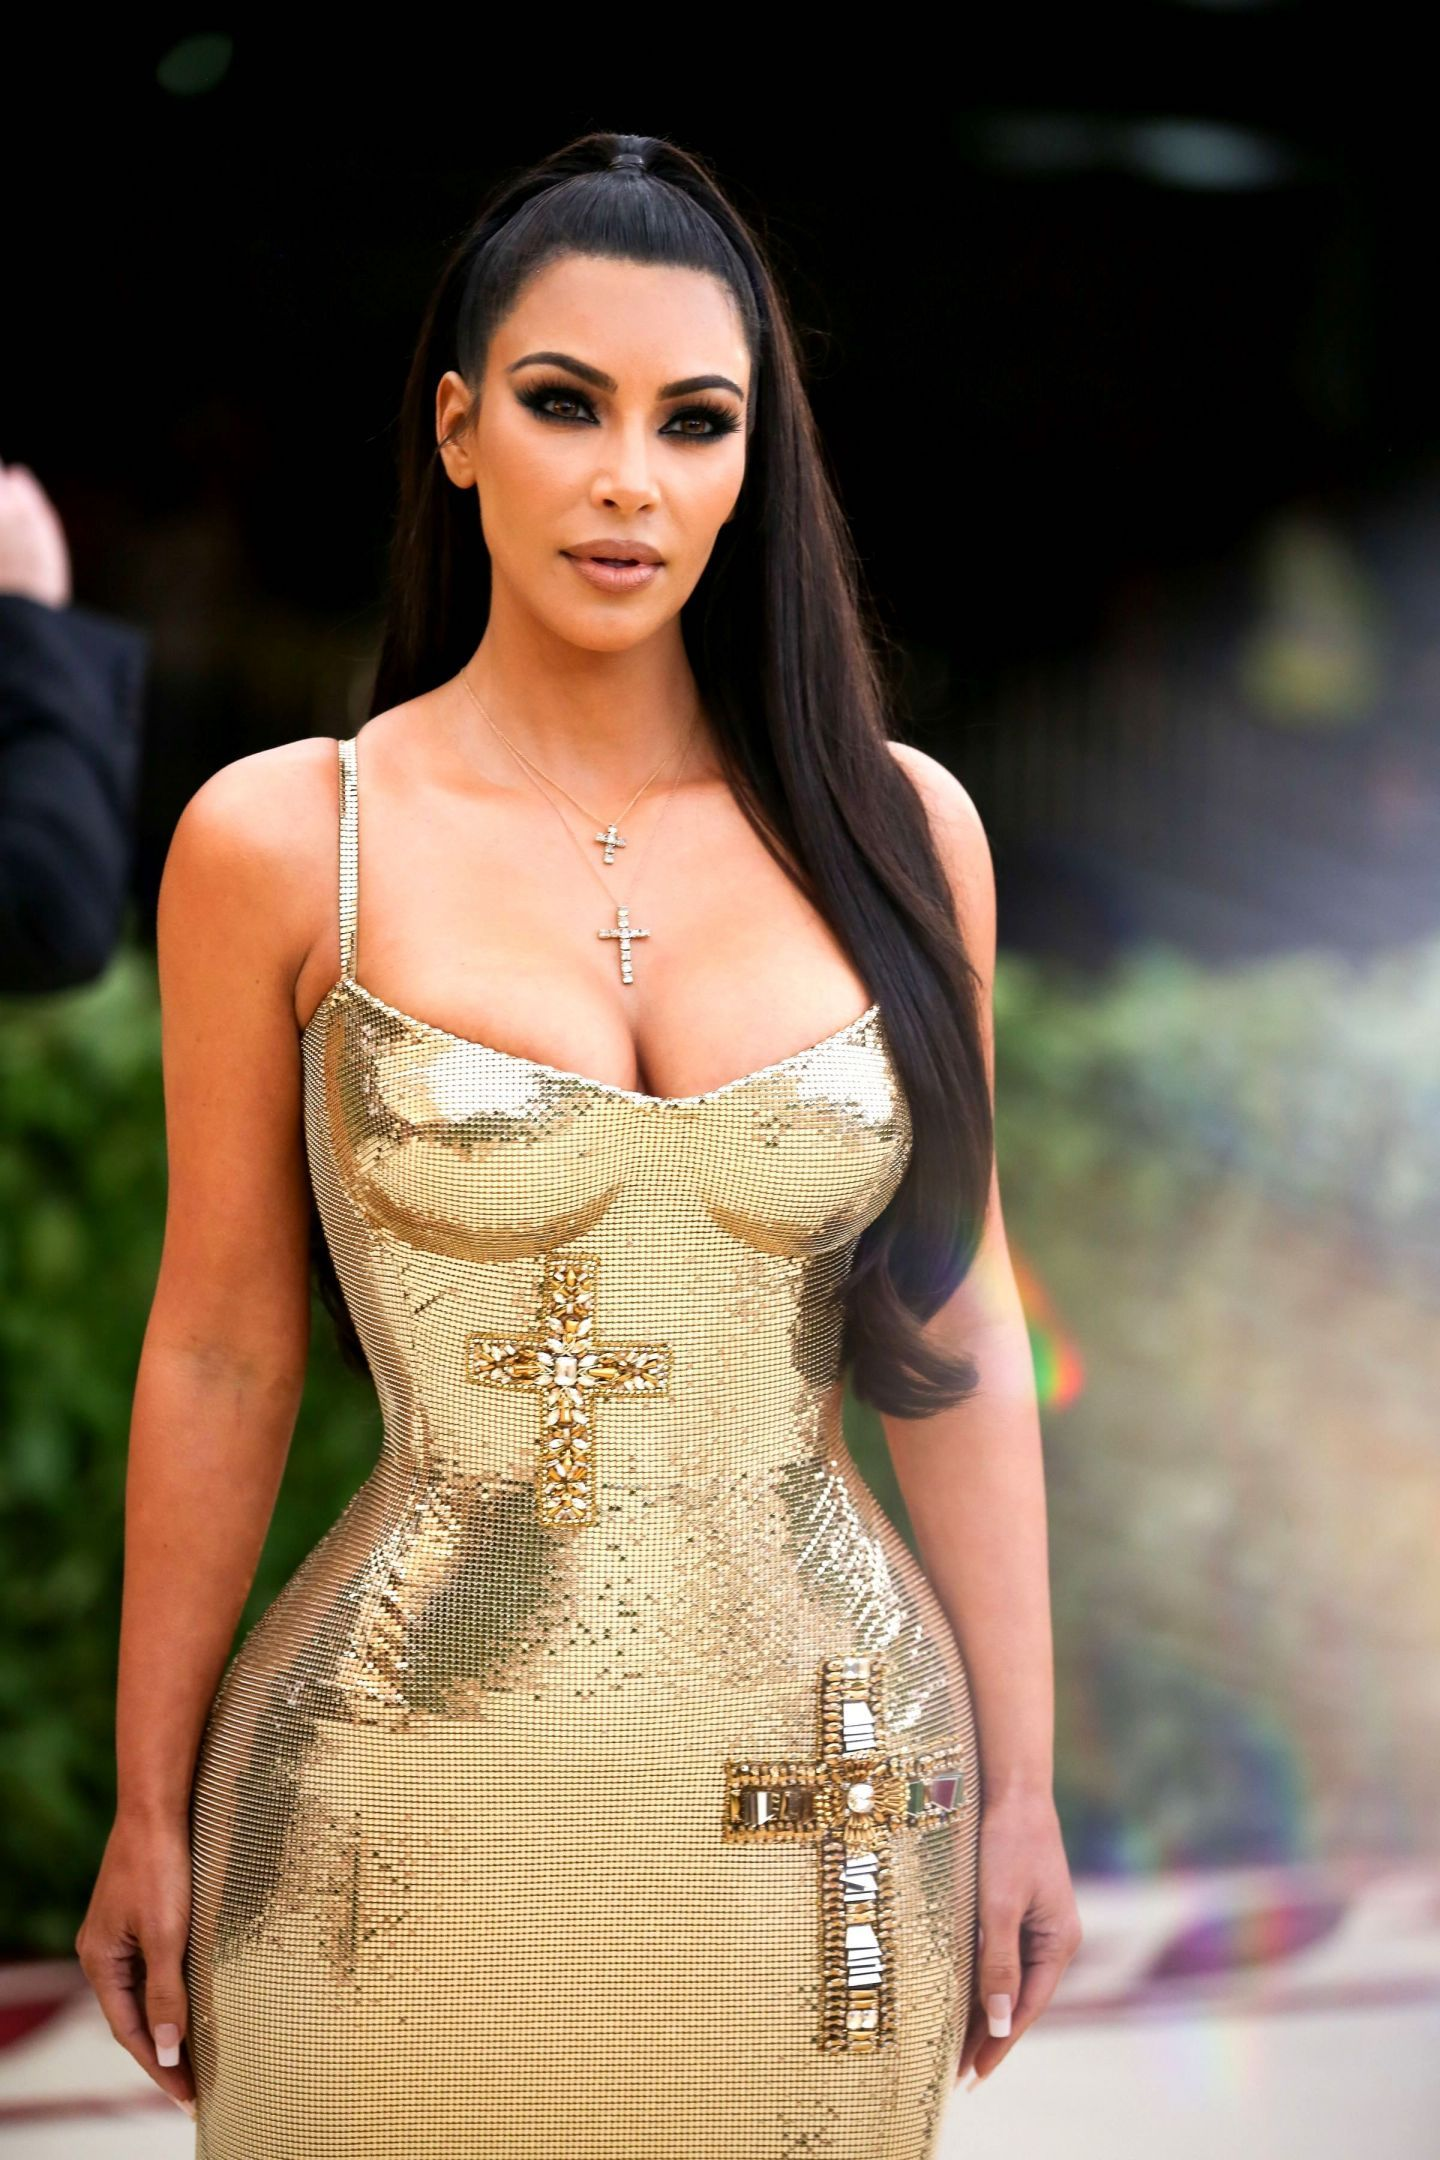 This Is Why Kim Kardashian Went To The Met Gala Without Kanye West Vrouw En Kapsels